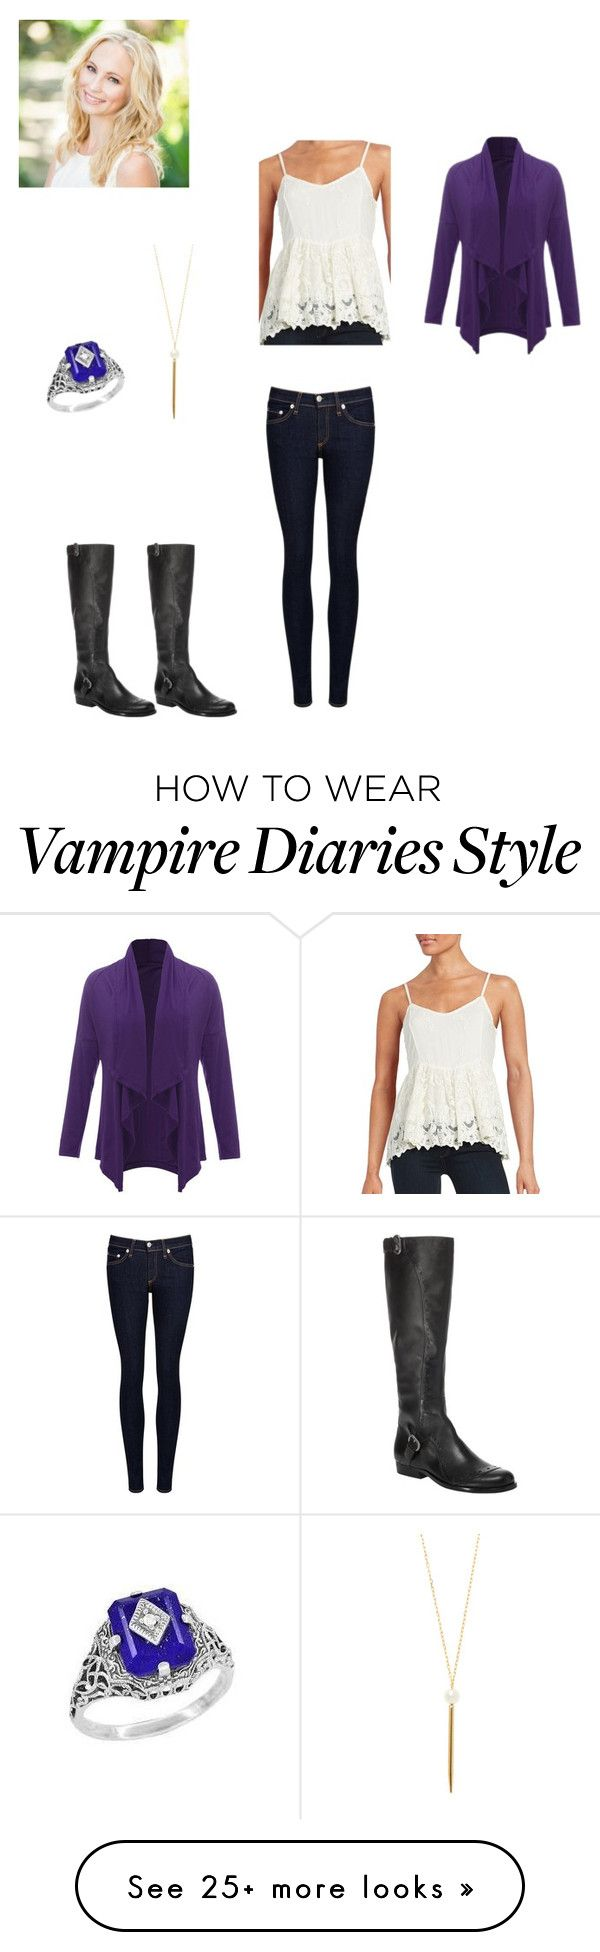 """Caroline Forbes"" by girlwhosparkles on Polyvore featuring Lazuli, Gemma Crus, rag & bone/JEAN, Ella Moss and Max Studio"